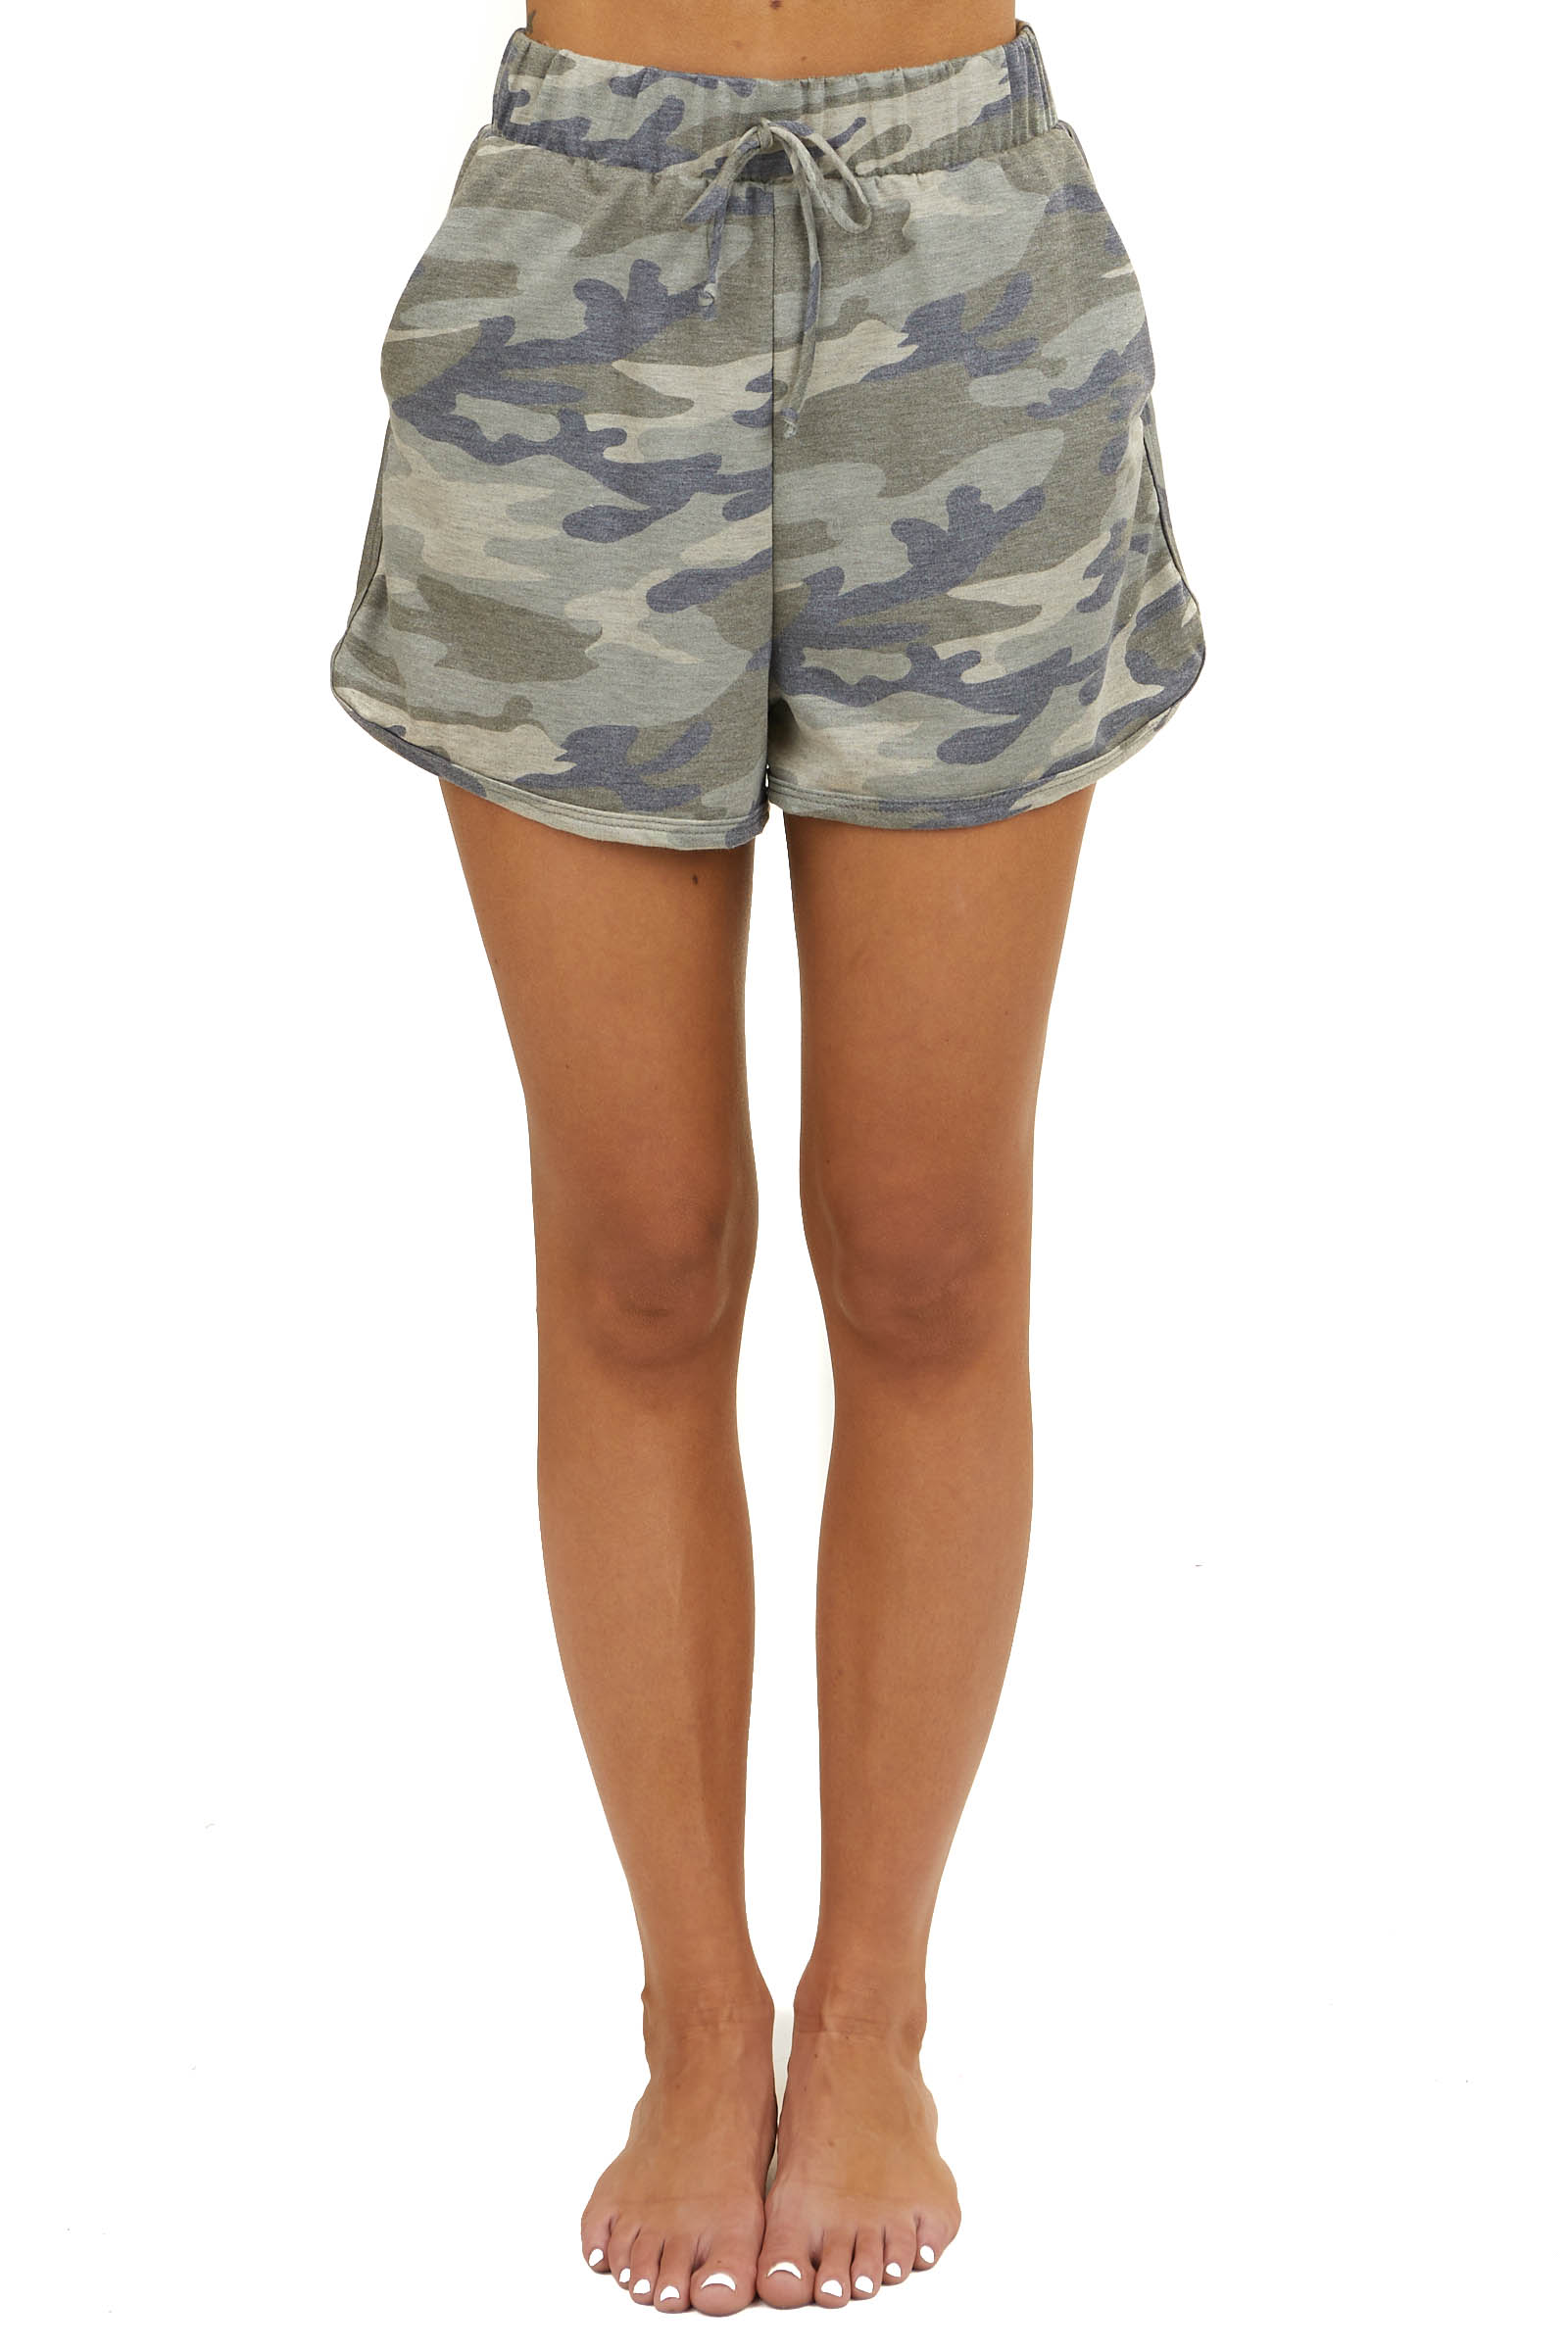 Olive Green Camo Loungewear Drawstring Shorts with Pockets